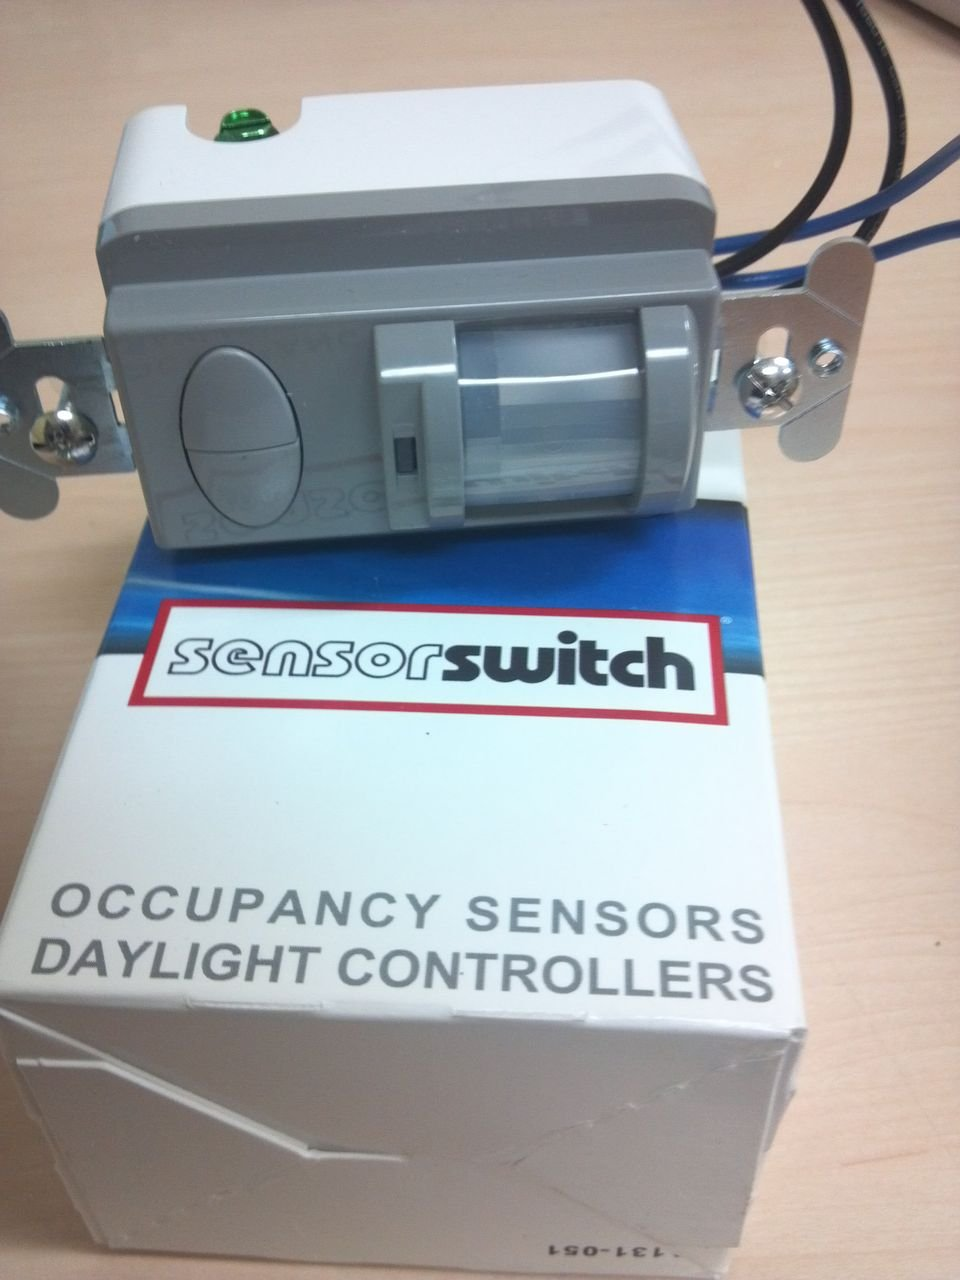 Sensor Switch WSD PDT 2P GY GRAY LINE VOLTAGE • 2-POLE • DUAL TECHNOLOGY (PDT) WSD2PWH WSD-PDT-2P-GY by Sensor Switch (Image #2)